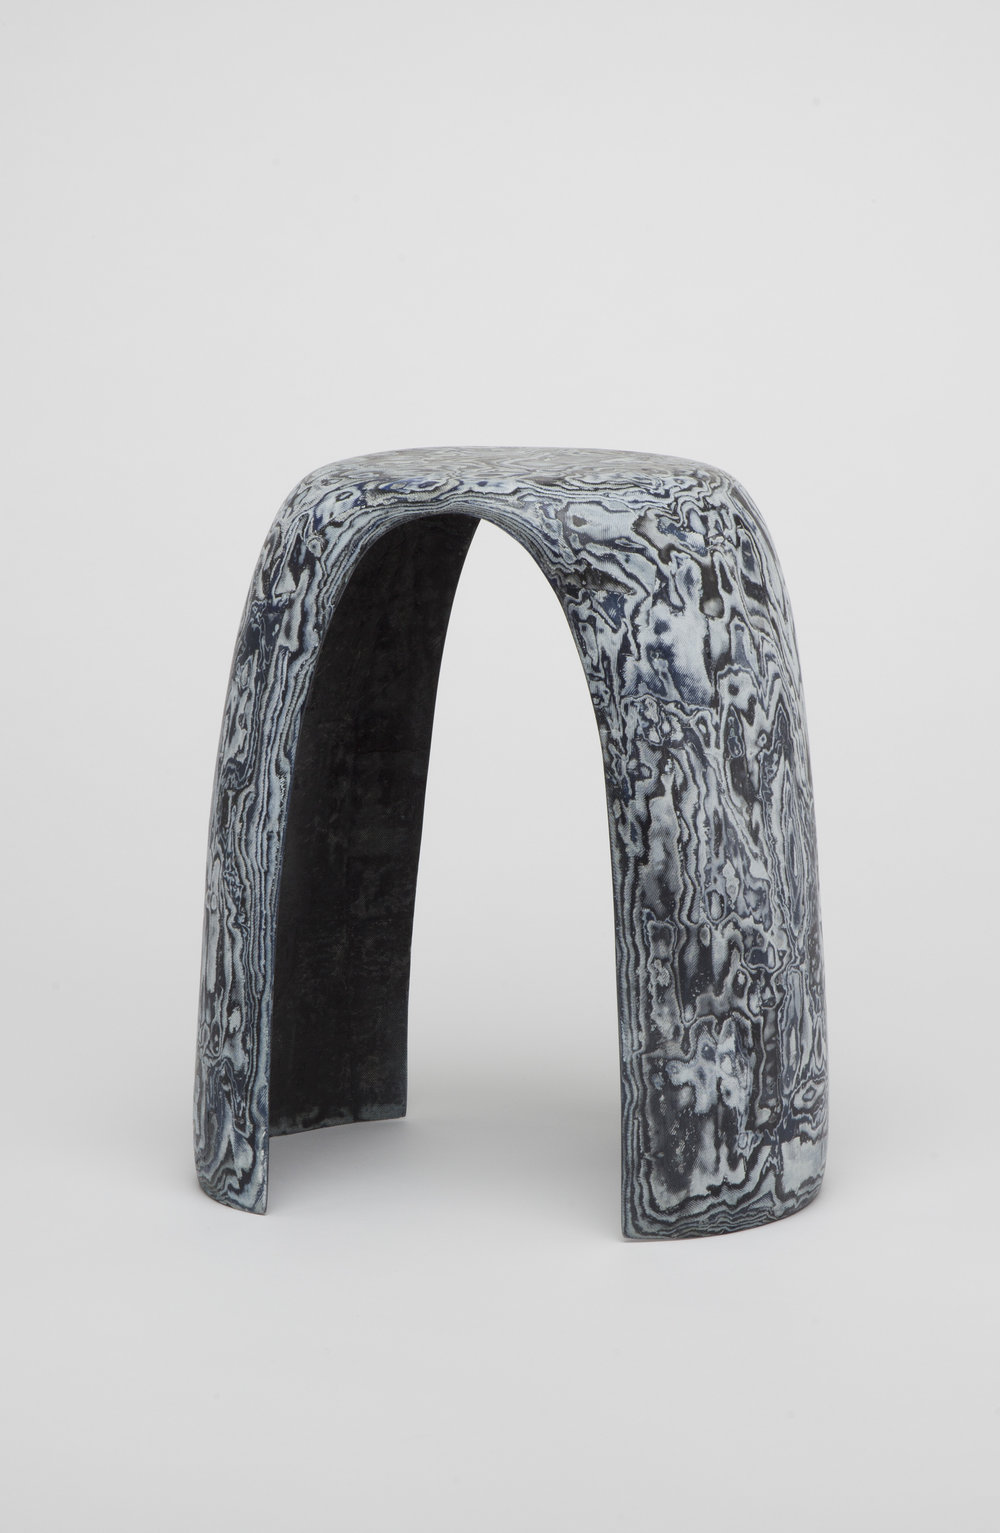 Bahia Stool:The Bahia stool is a sculptural seating piece for the interior. It is made out of denim offcuts from Diesels Denim-production. The disgards are draped over a mould and the layers are adhesed together with bioresin. After the material is dry it is carved to create a flat surface. Through the carving process as well as through the different sized and coloured offcuts a bespoke marble-like pattern appears. The arch shape of the stool forms an elegant and sculptural silhouette which is ideal to reveal the vibrant pattern of the Bahia Denim.The marble-illusion gave the stool its name, the Bahia Denim, named after a Brazilian blue marble which it resembles.